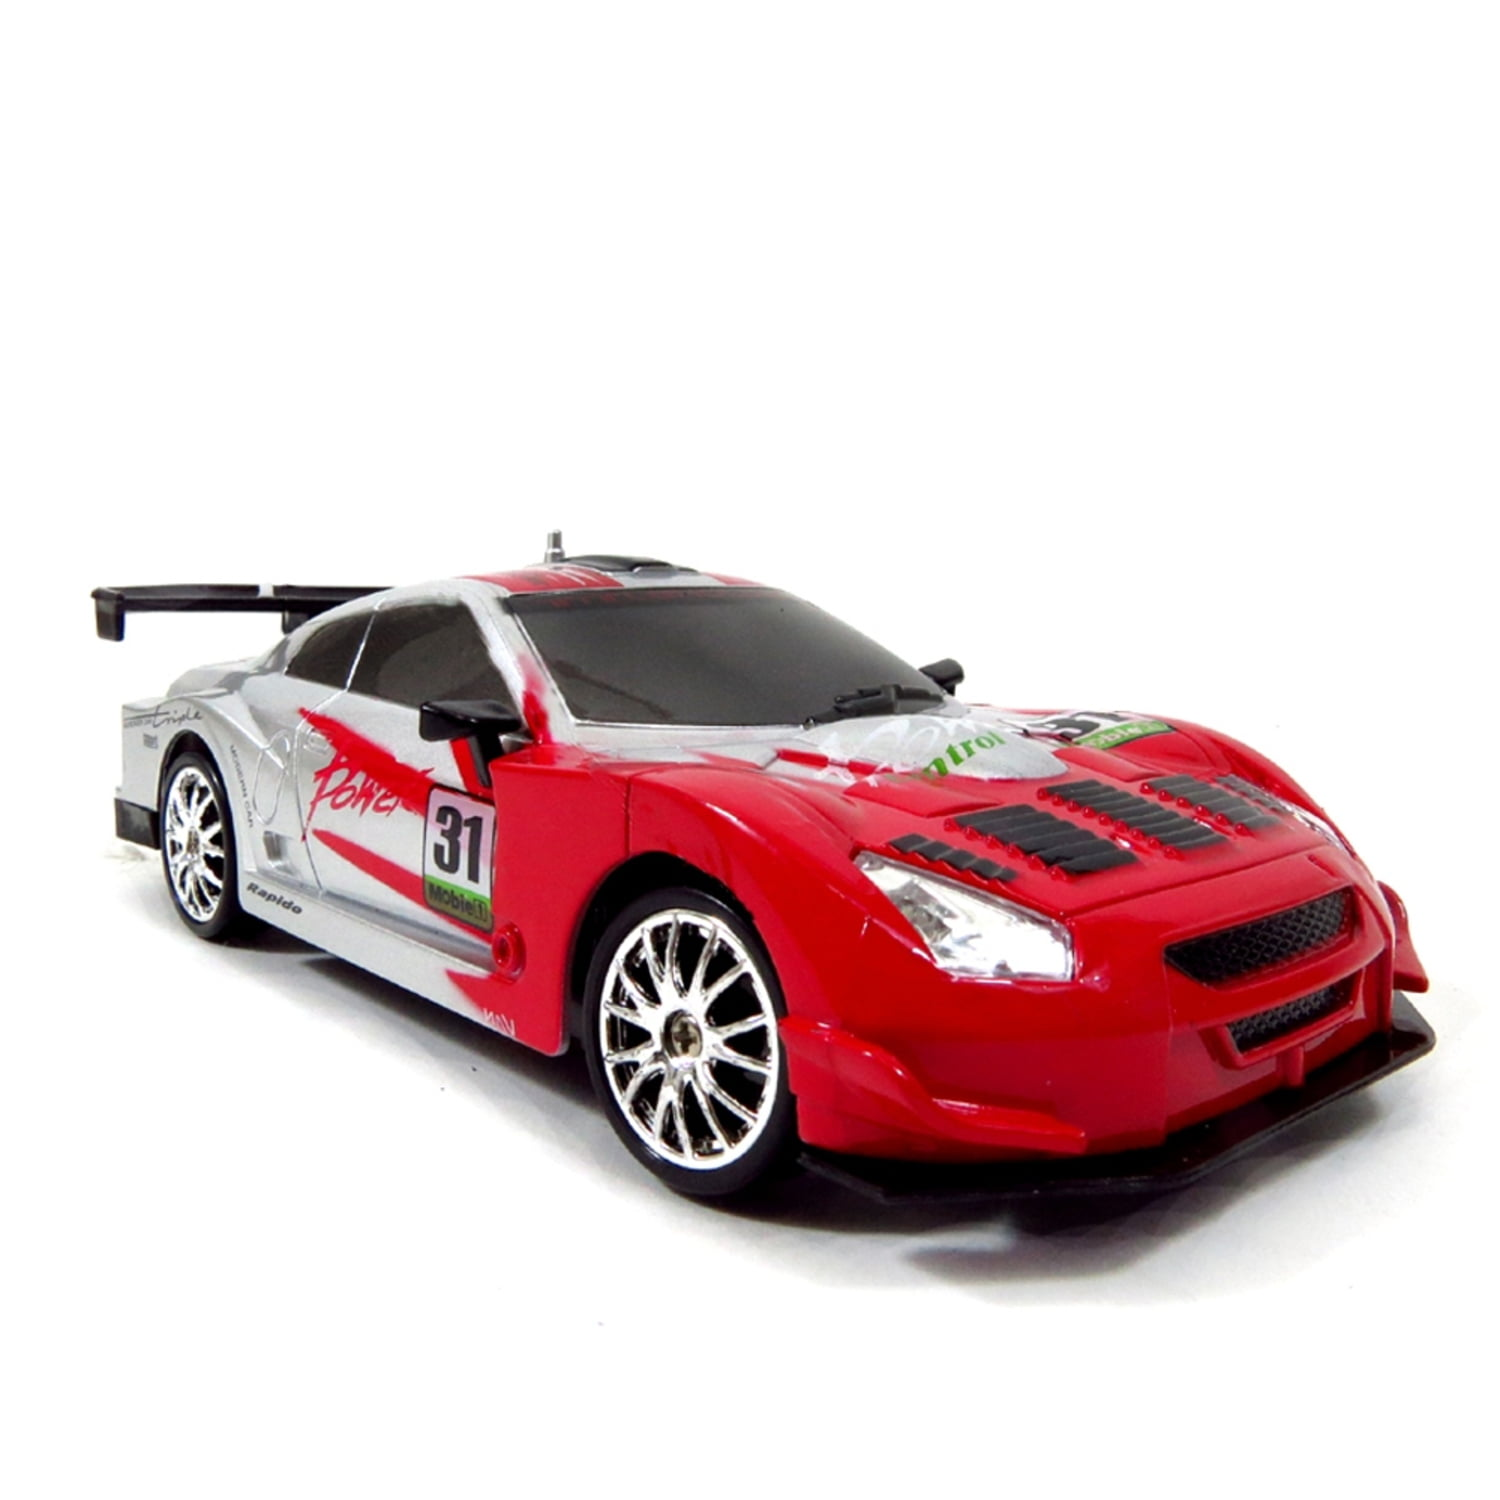 1:24 Super Fast RC Drift Race Car Radio Control Red (Gift Idea) RC Car R C Car Radio... by